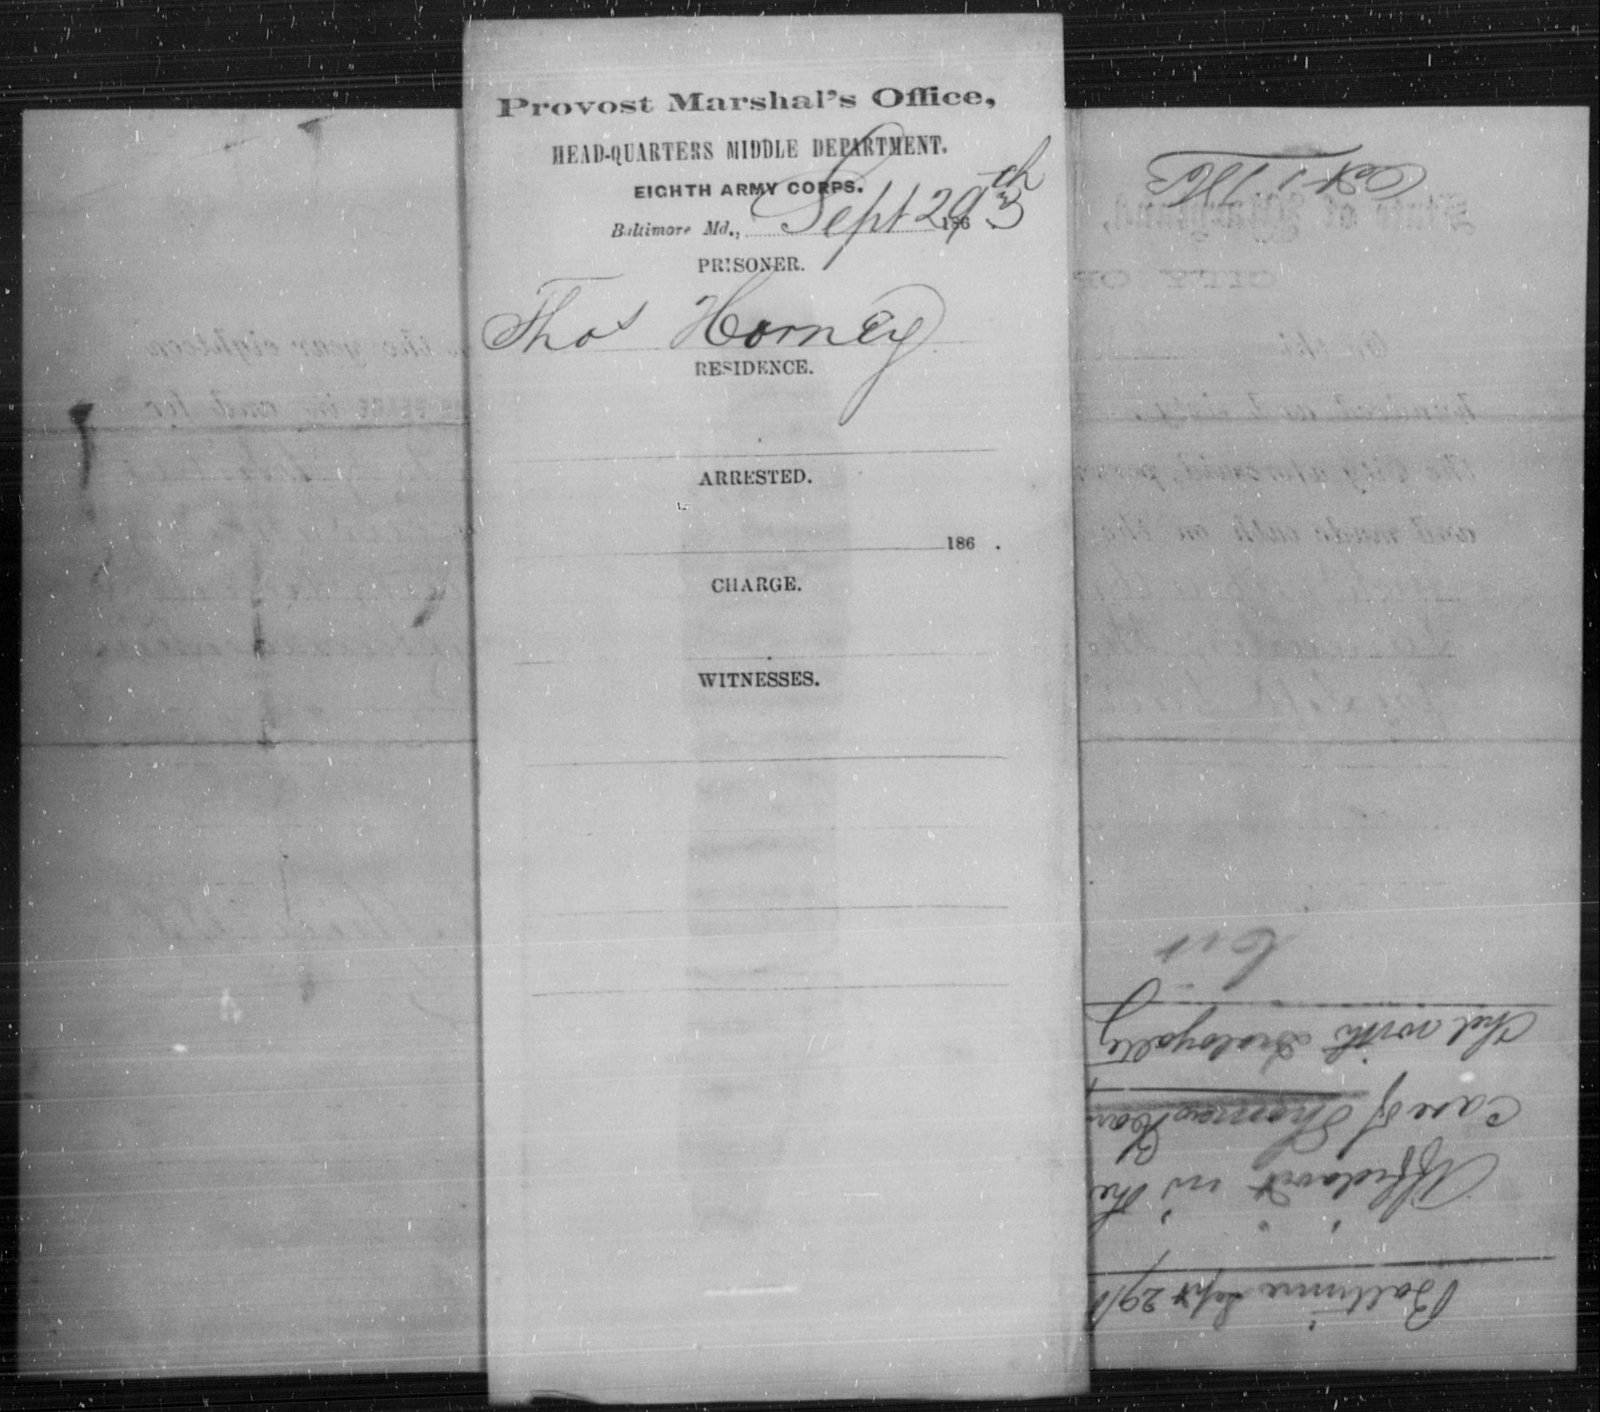 Horney, Thos - State: Maryland - Year: 1863